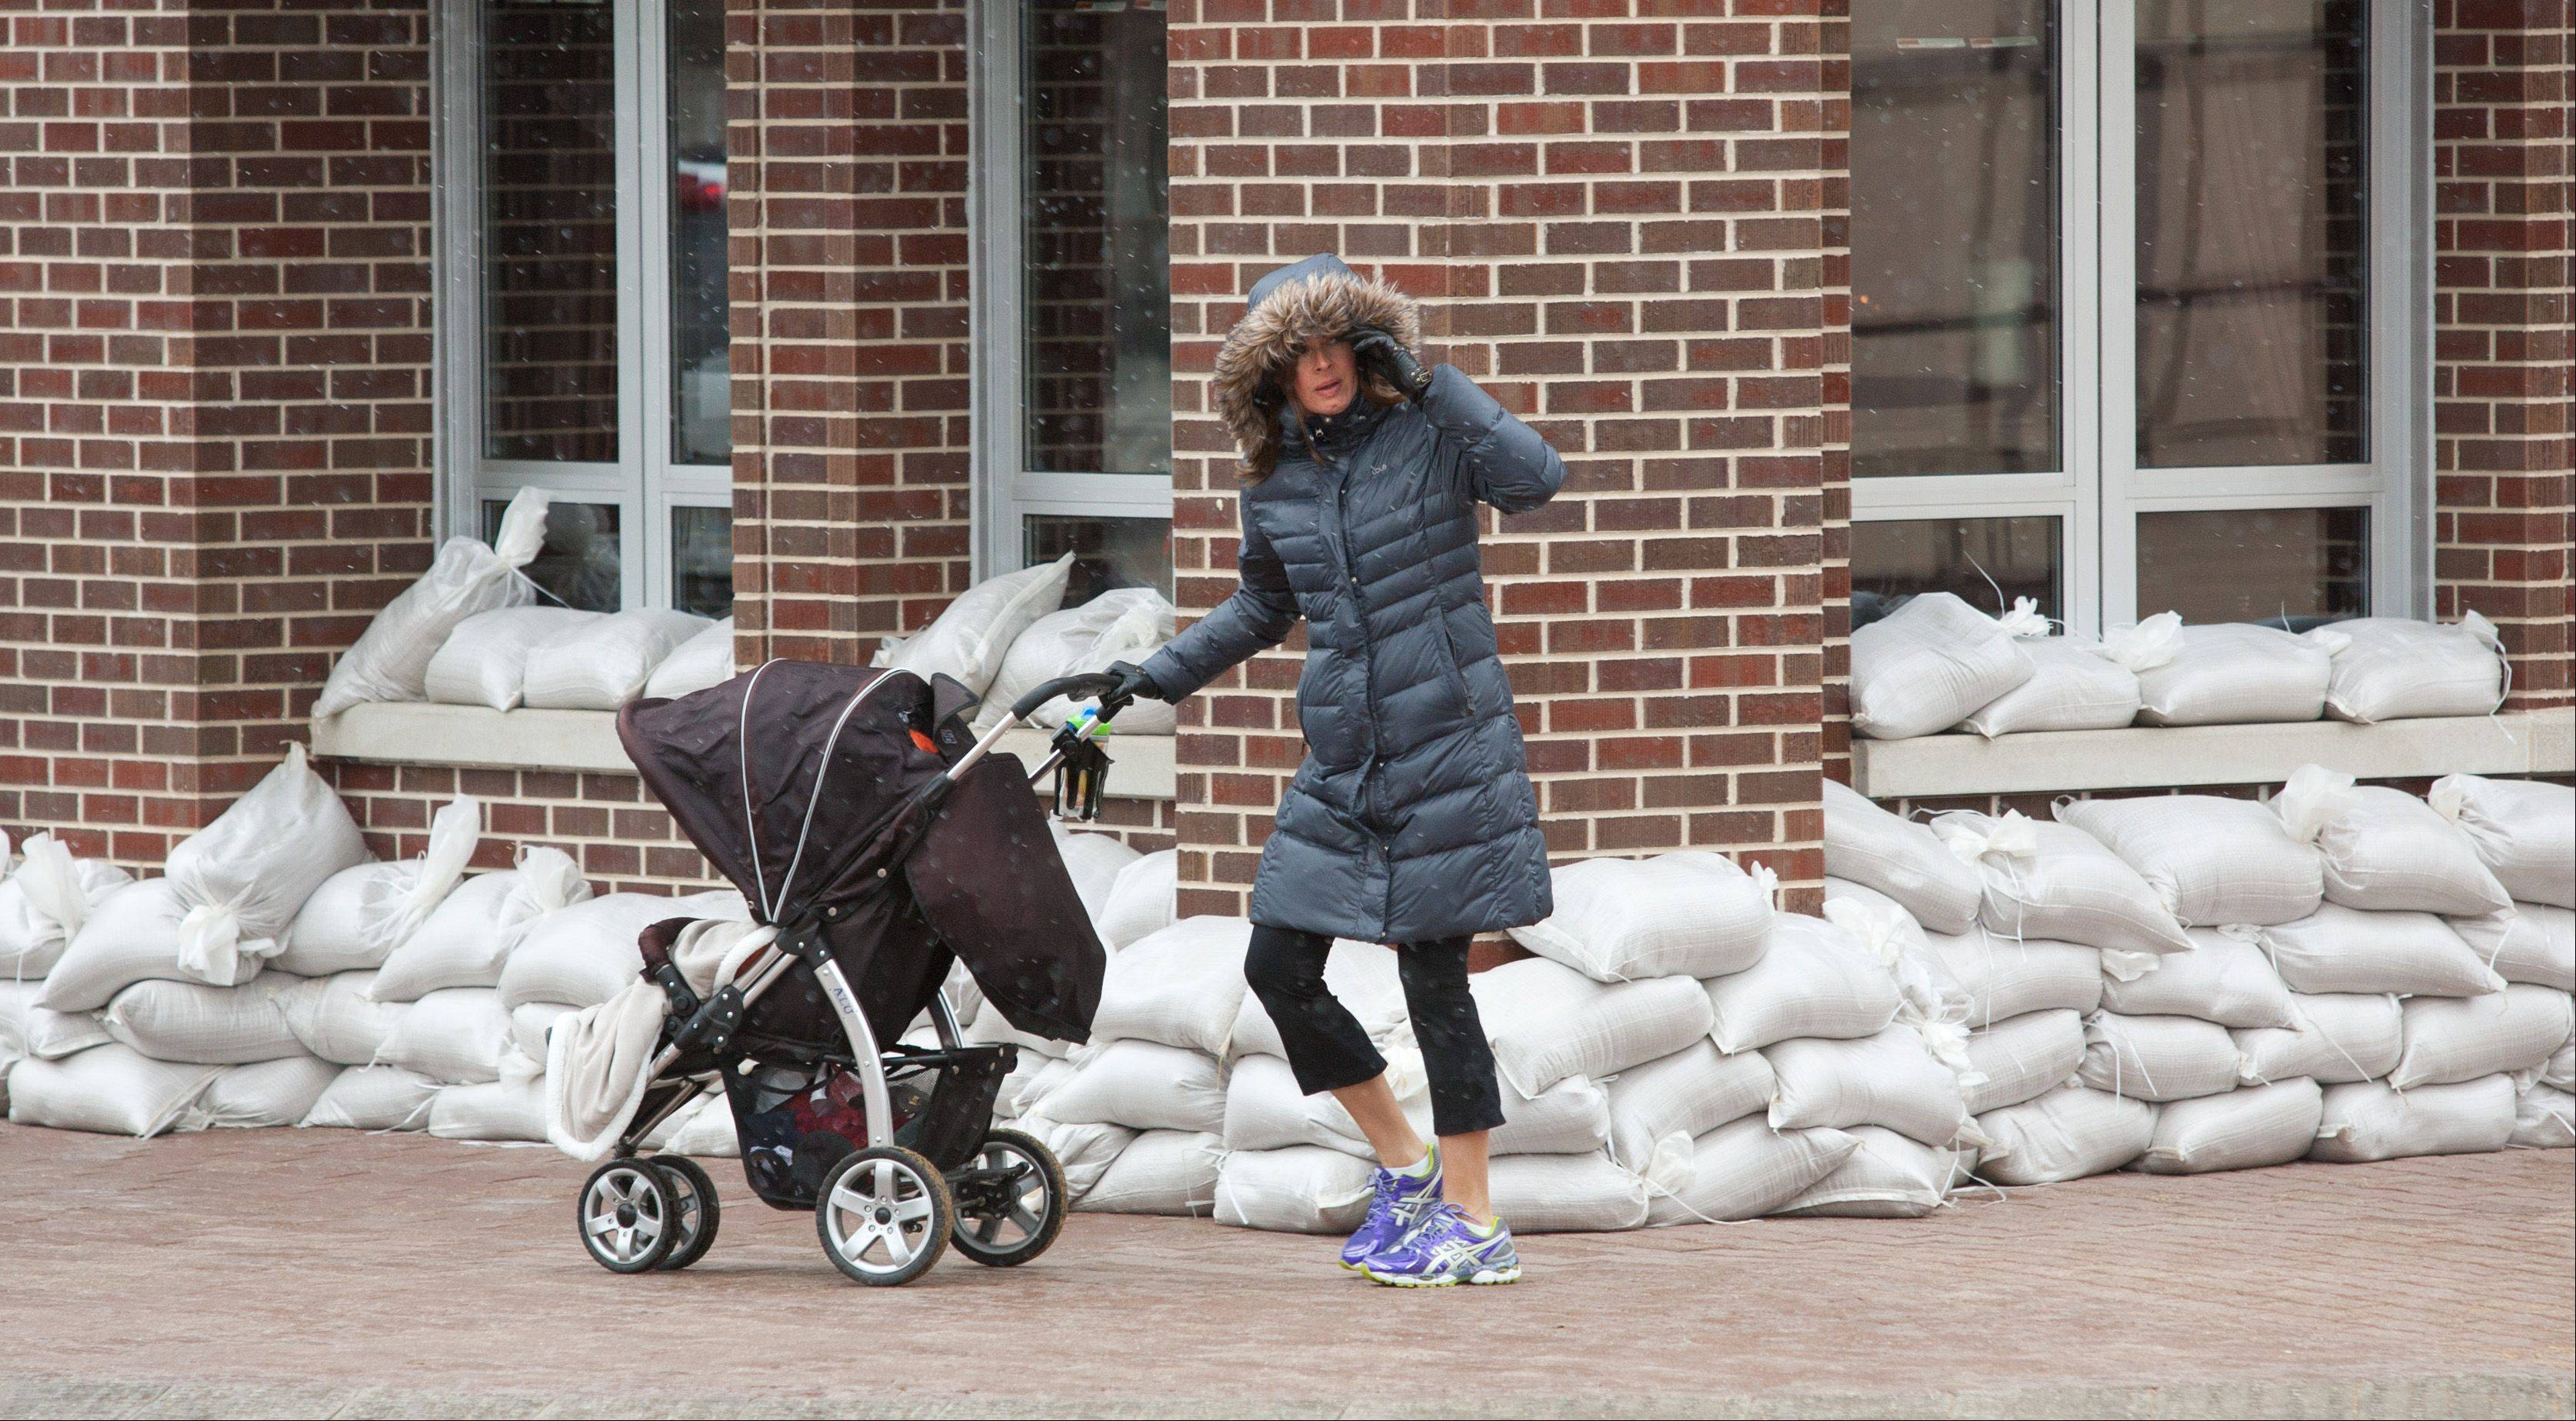 Snow falls in front of Sullivans, as a mom walks her baby while the city of Naperville works to clean up from ravaging downtown flooding.